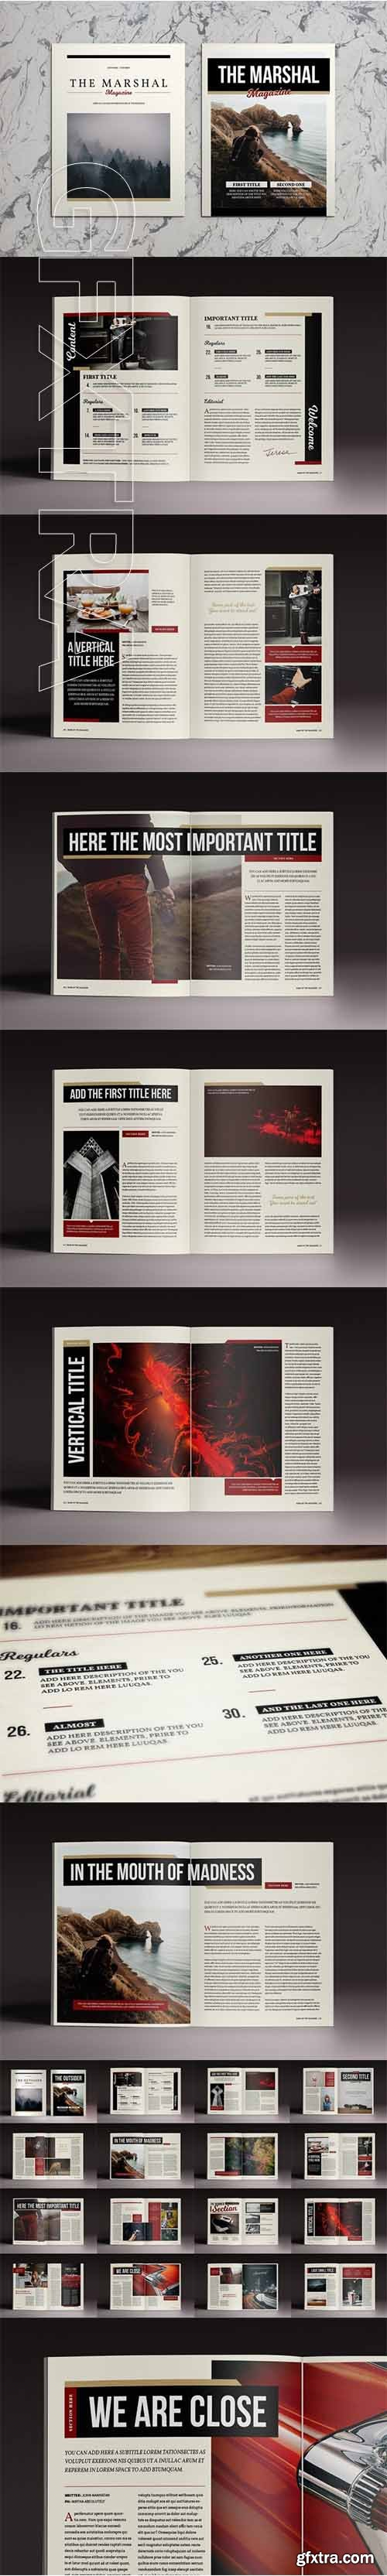 The Marshall Indesign Template